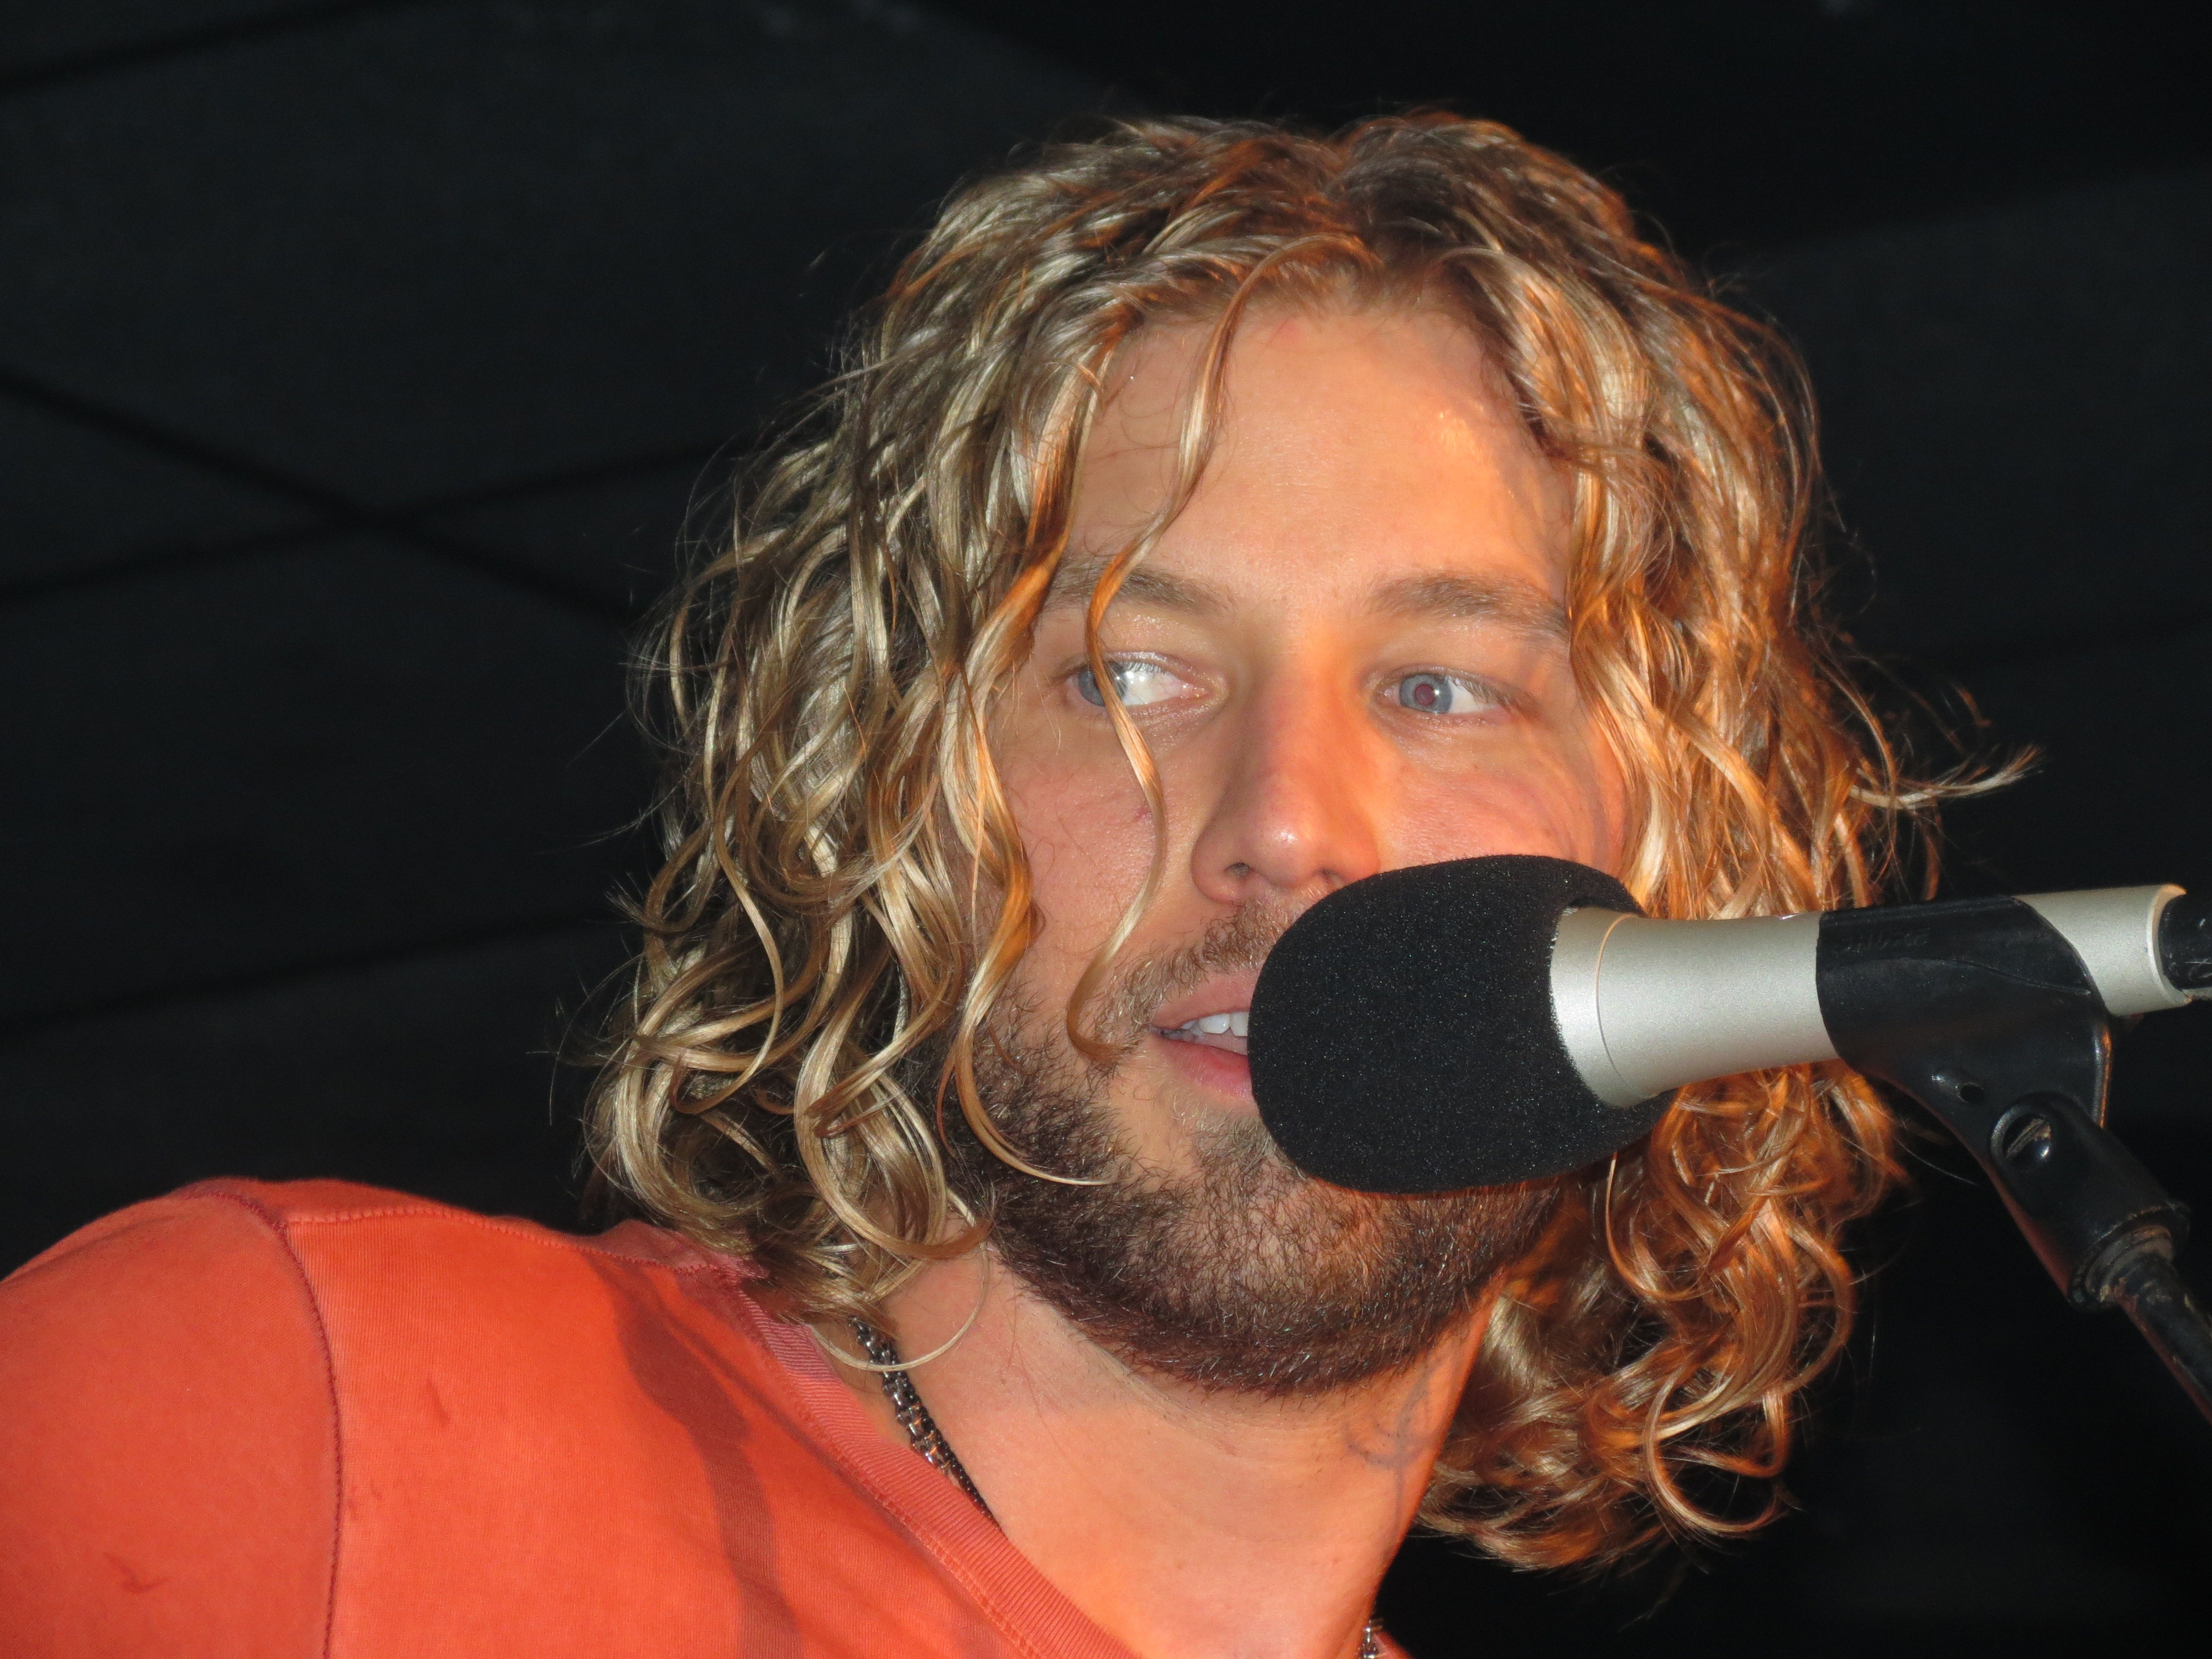 Casey james returns to american idol south florida country music photo by mike carroll thecheapjerseys Image collections